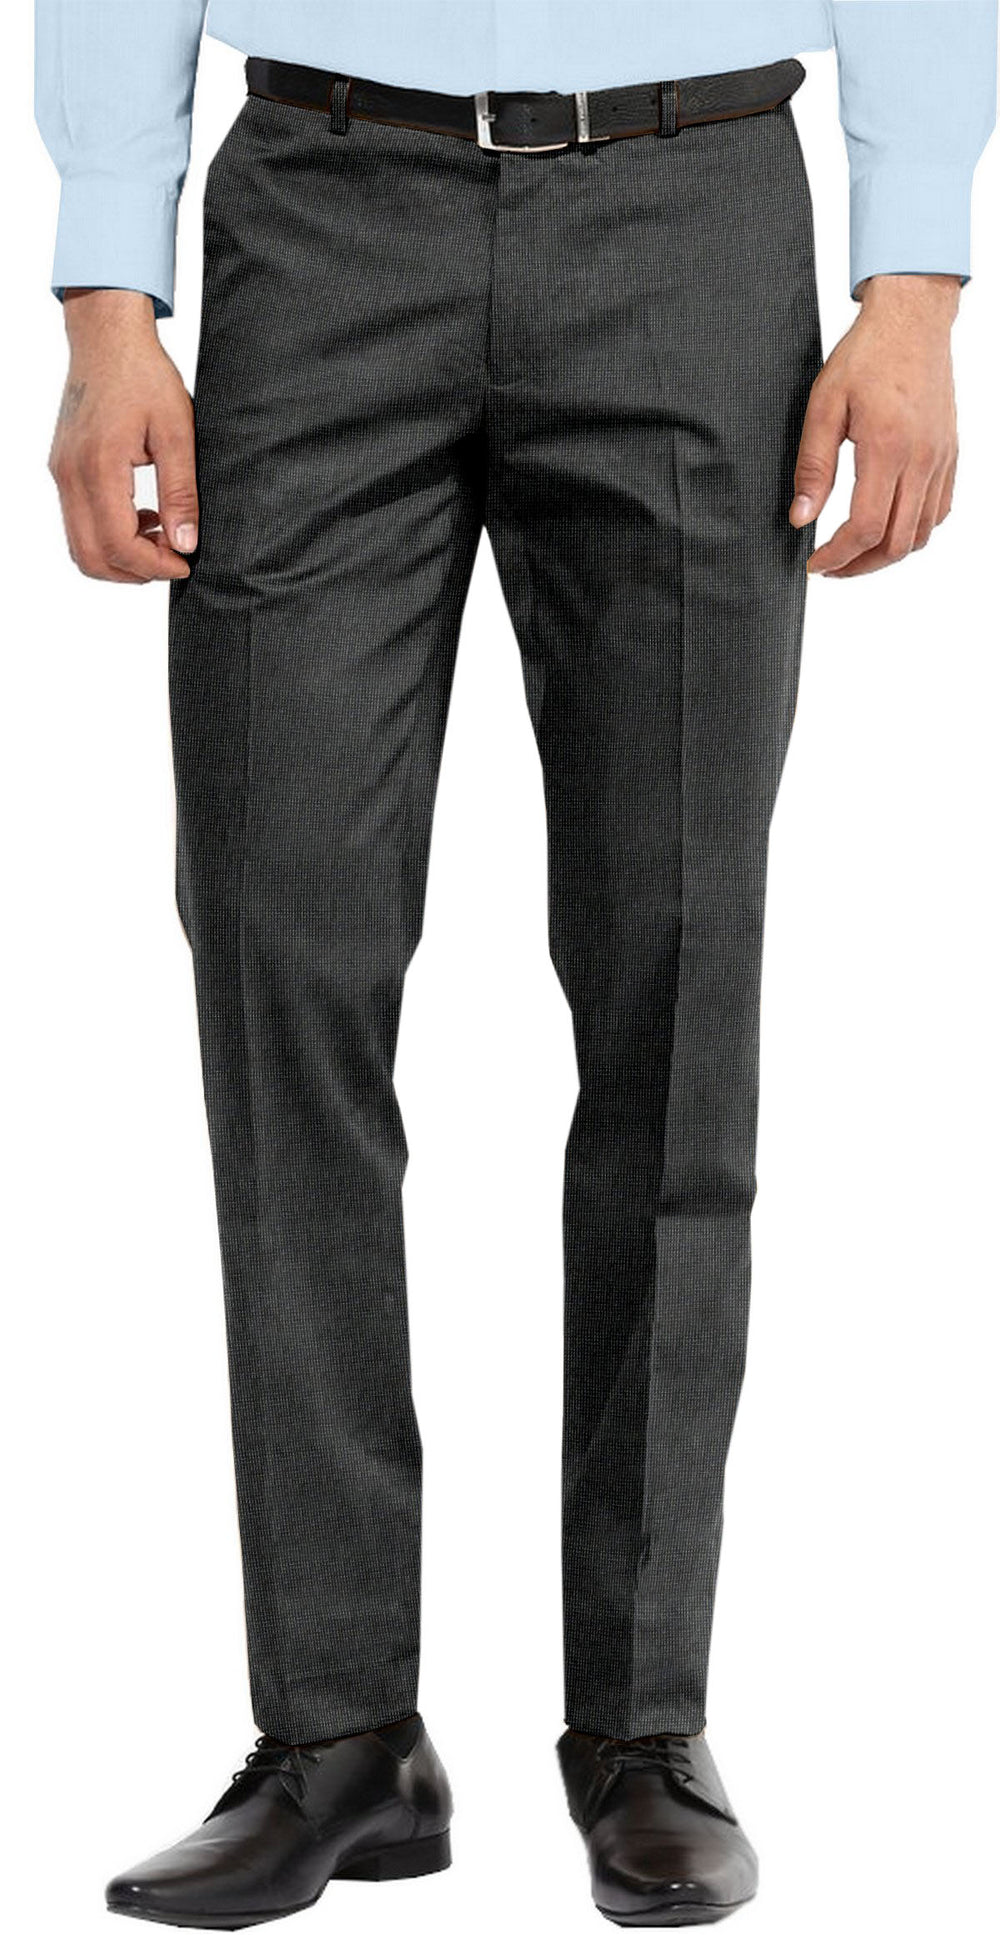 Dugdale Fine Worsted - Grey Textured Plain Pant